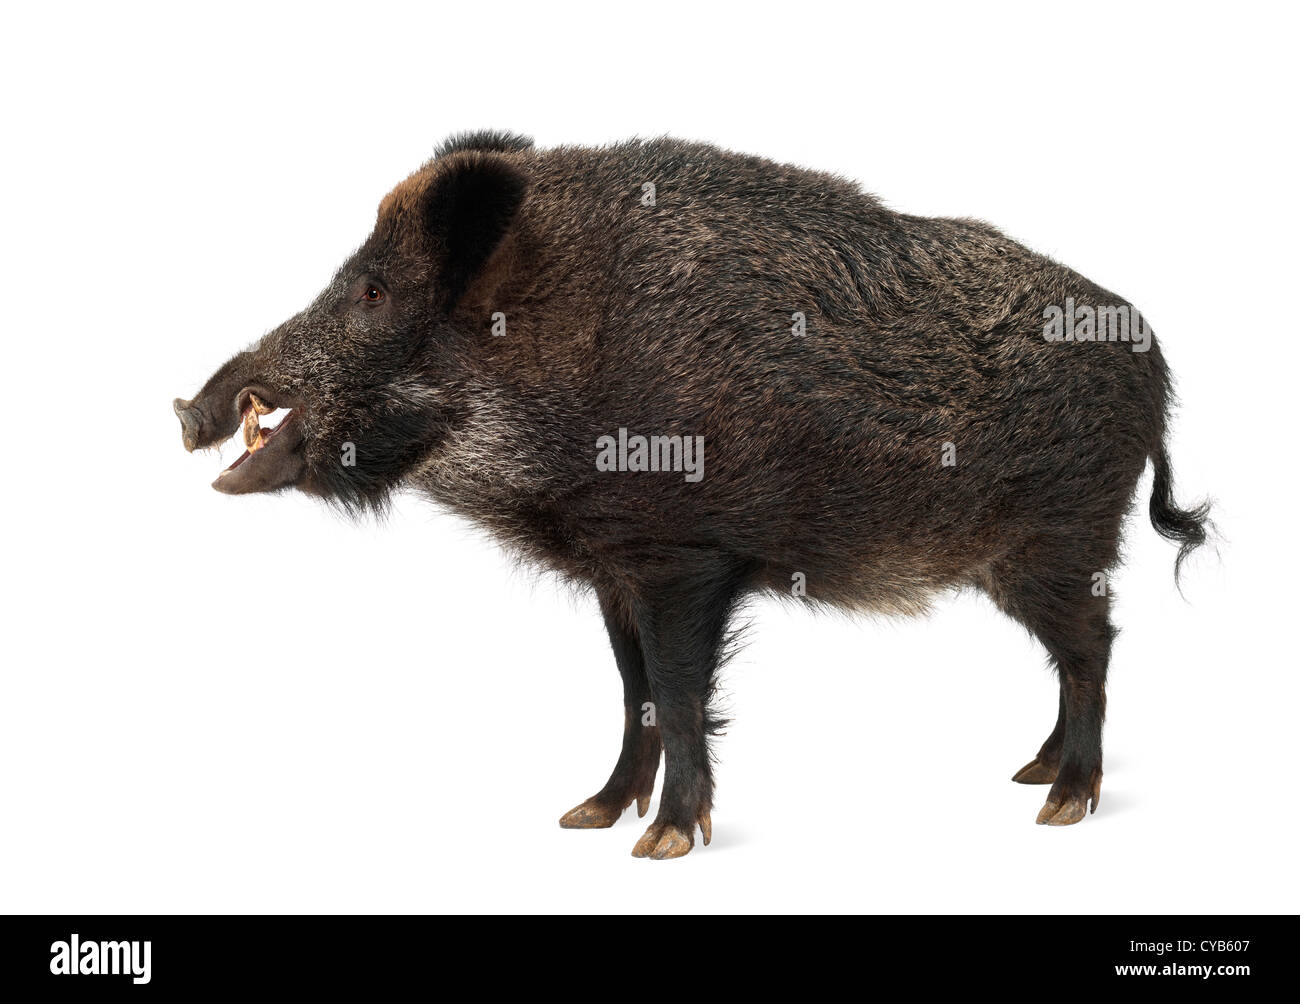 Wild boar, also wild pig, Sus scrofa, 15 years old, standing against white background - Stock Image